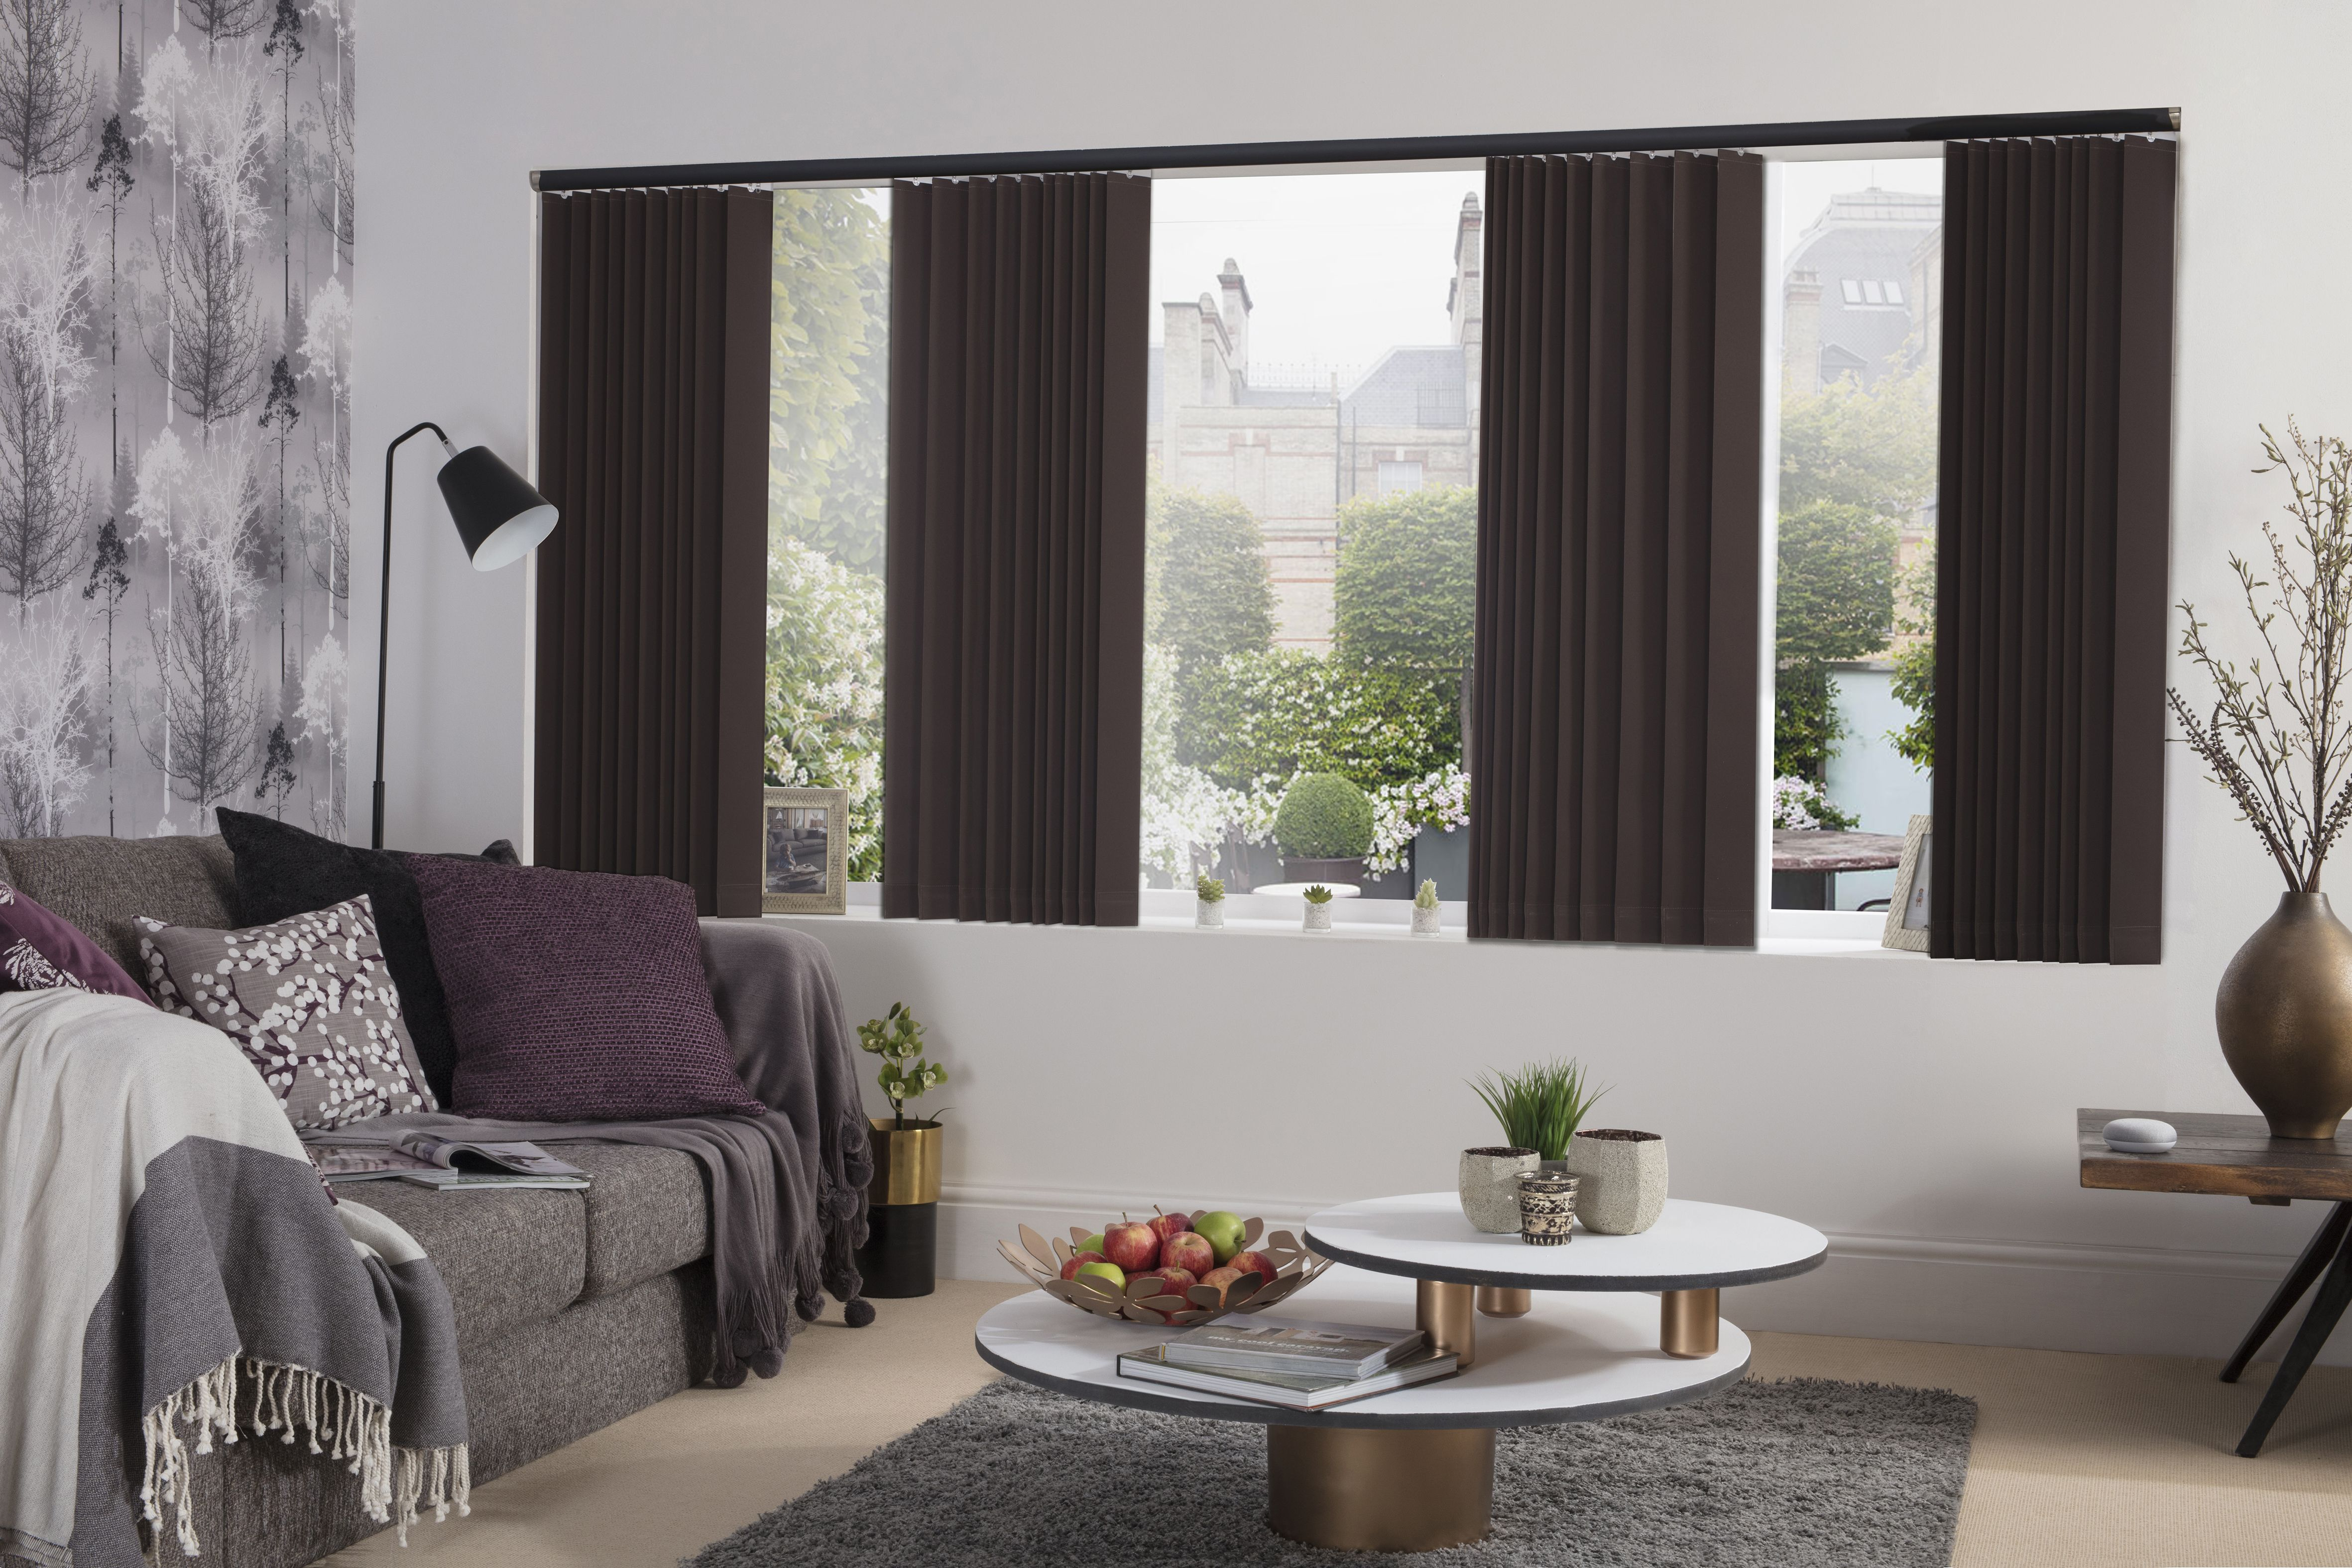 Palette Vertical Blinds In Espresso From Style Studio Contemporary Living Room Living Room Blinds Contemporary Decor Living Room Living Room Decor Inspiration